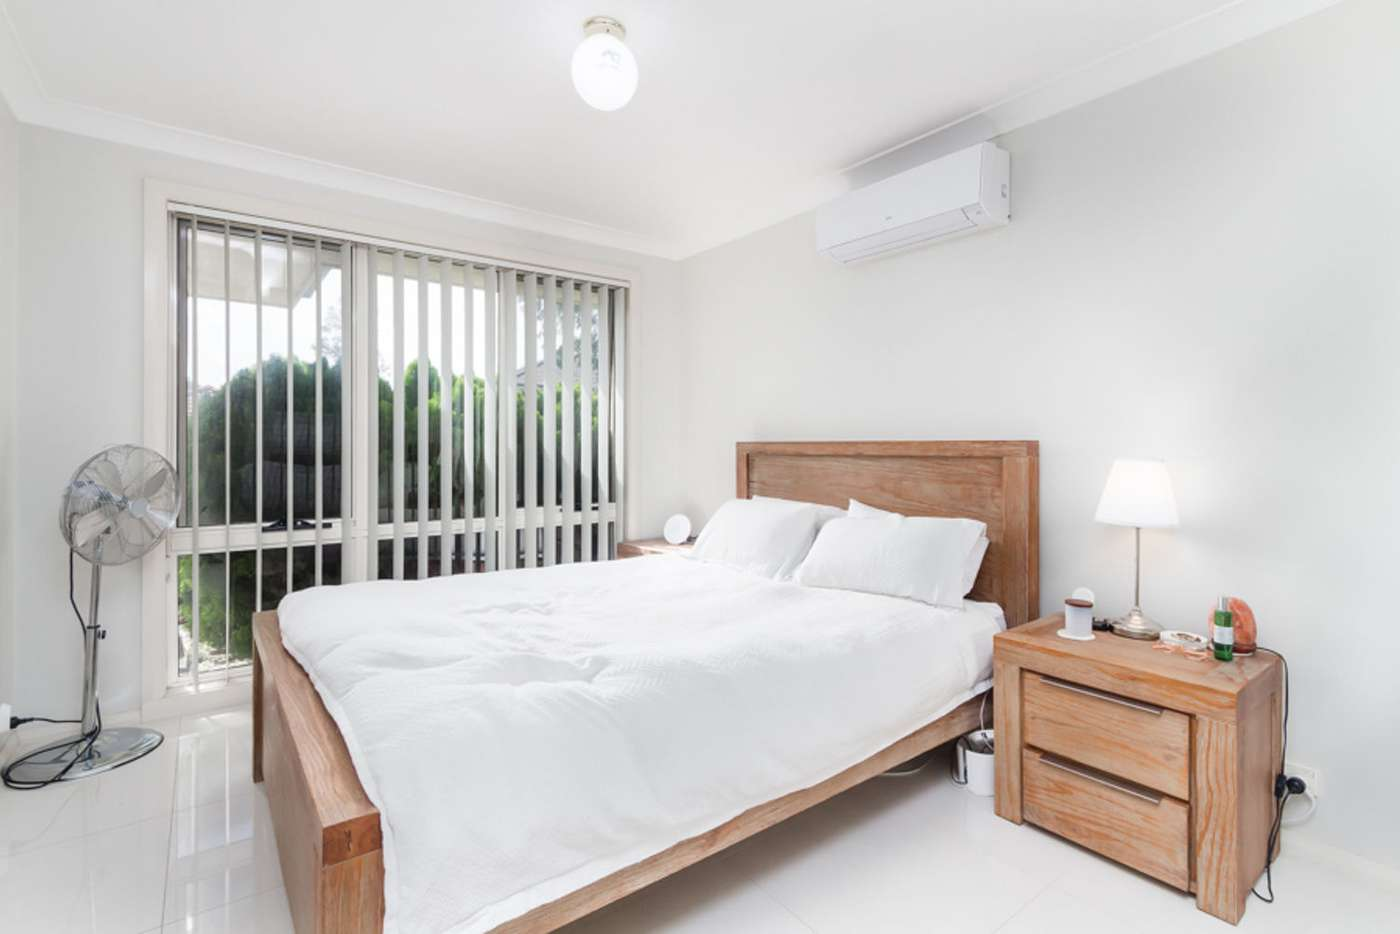 Sixth view of Homely house listing, 4 Oldbury Street, Stanhope Gardens NSW 2768